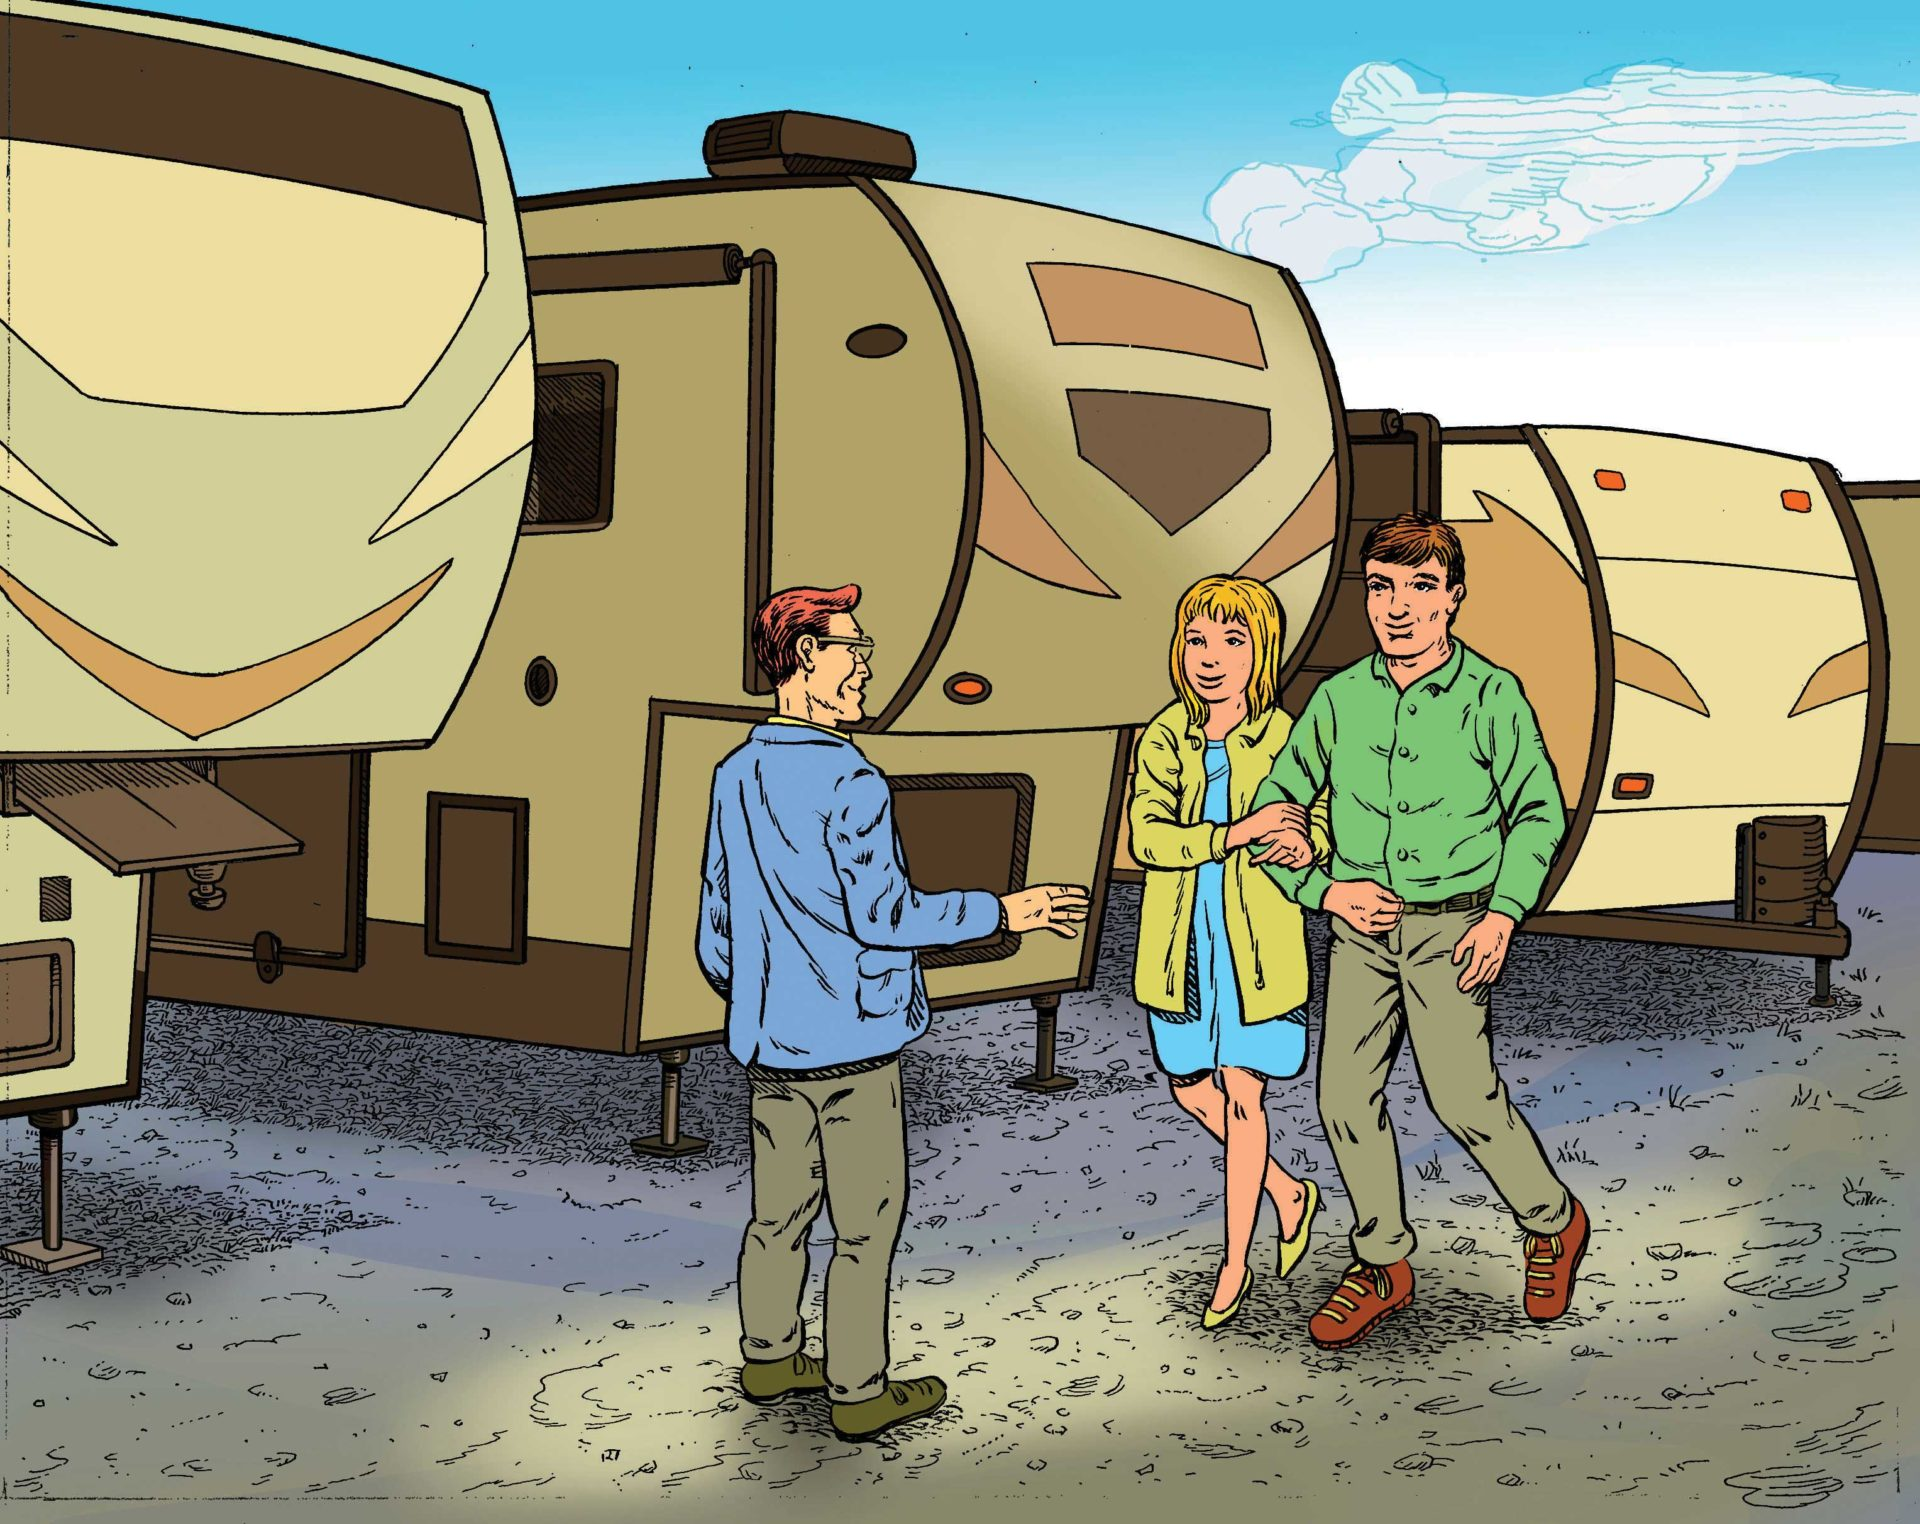 If you're thinking about purchasing an RV, make sure you know about potential problems to look for. Illustration by Keith Milne and Gord Coulthart.